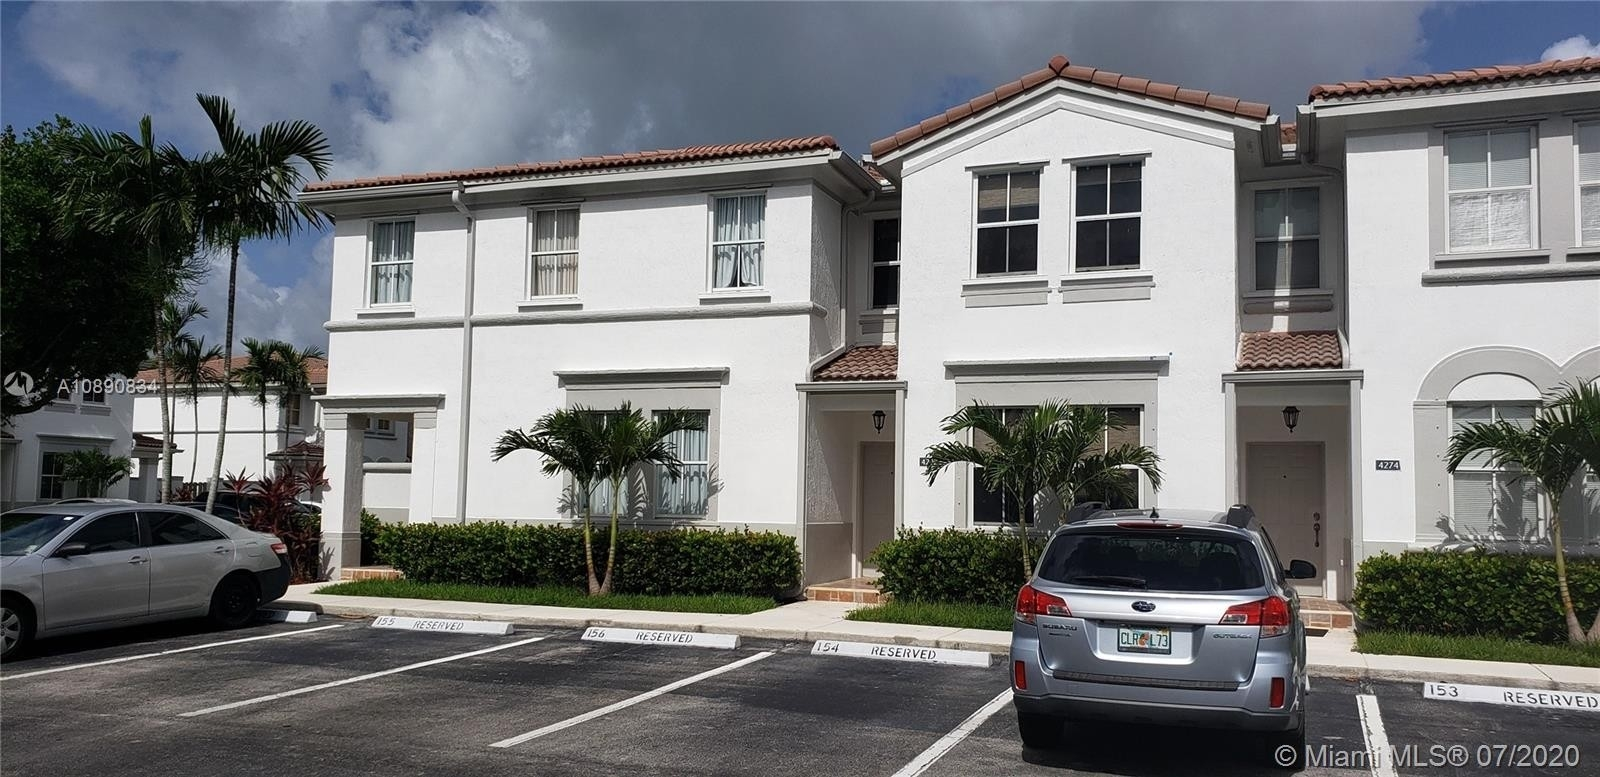 Single Family Townhouse for Sale at 4292 SW 156th Ave , 154 Country Lakes, Miramar, FL 33027